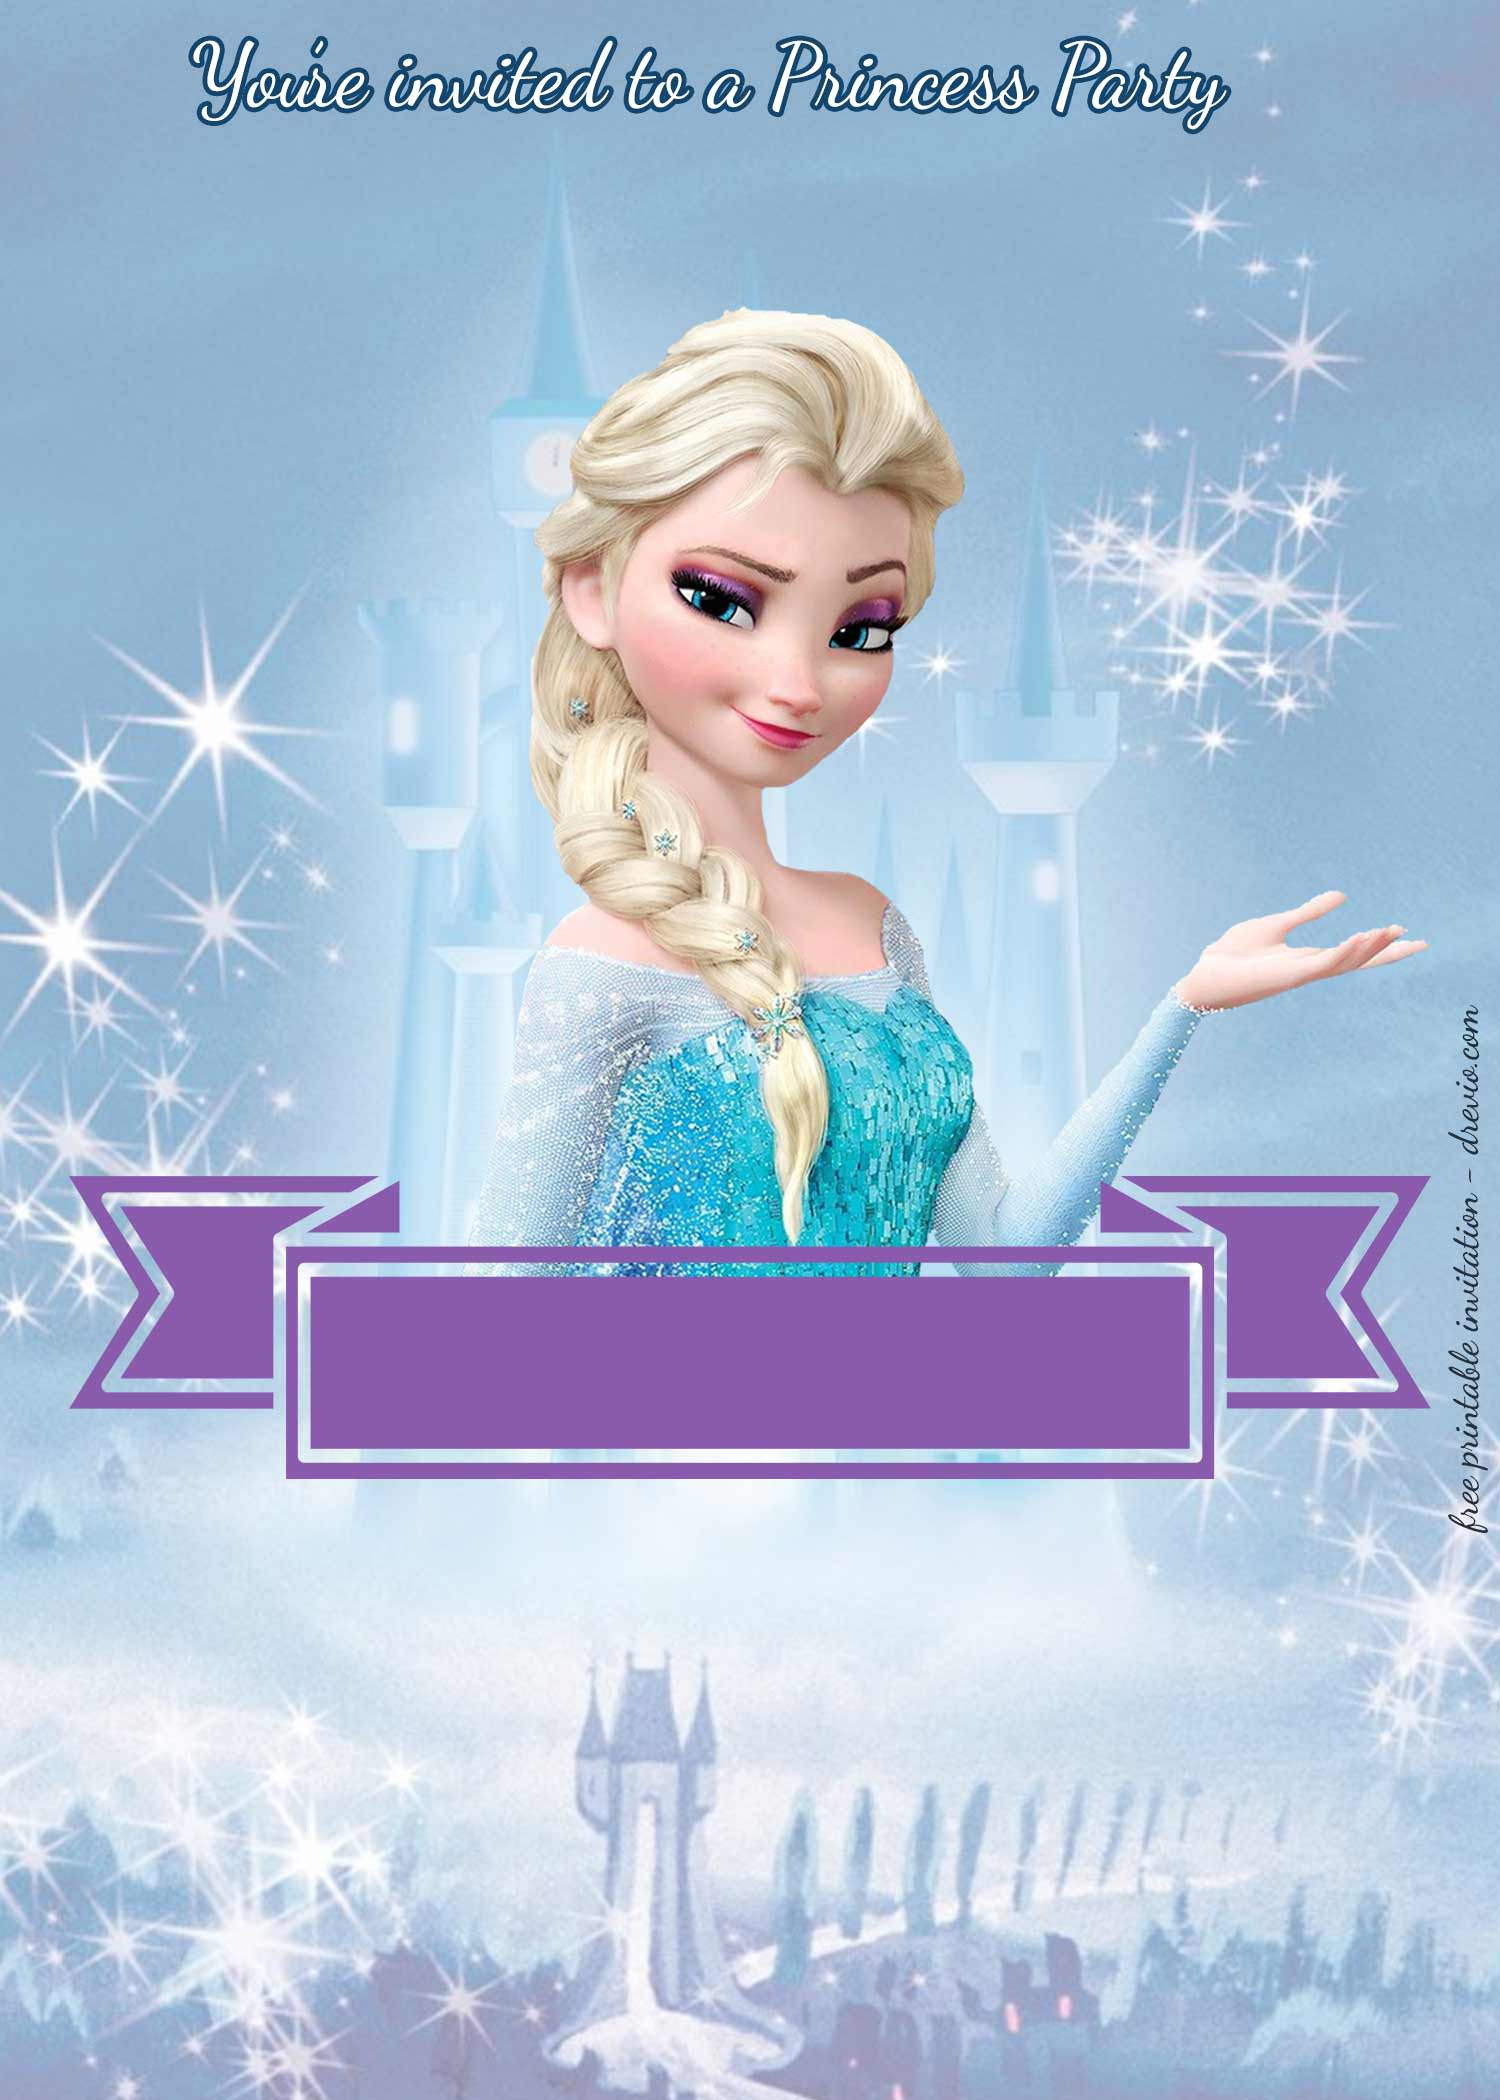 Disney Princess Invitation Template